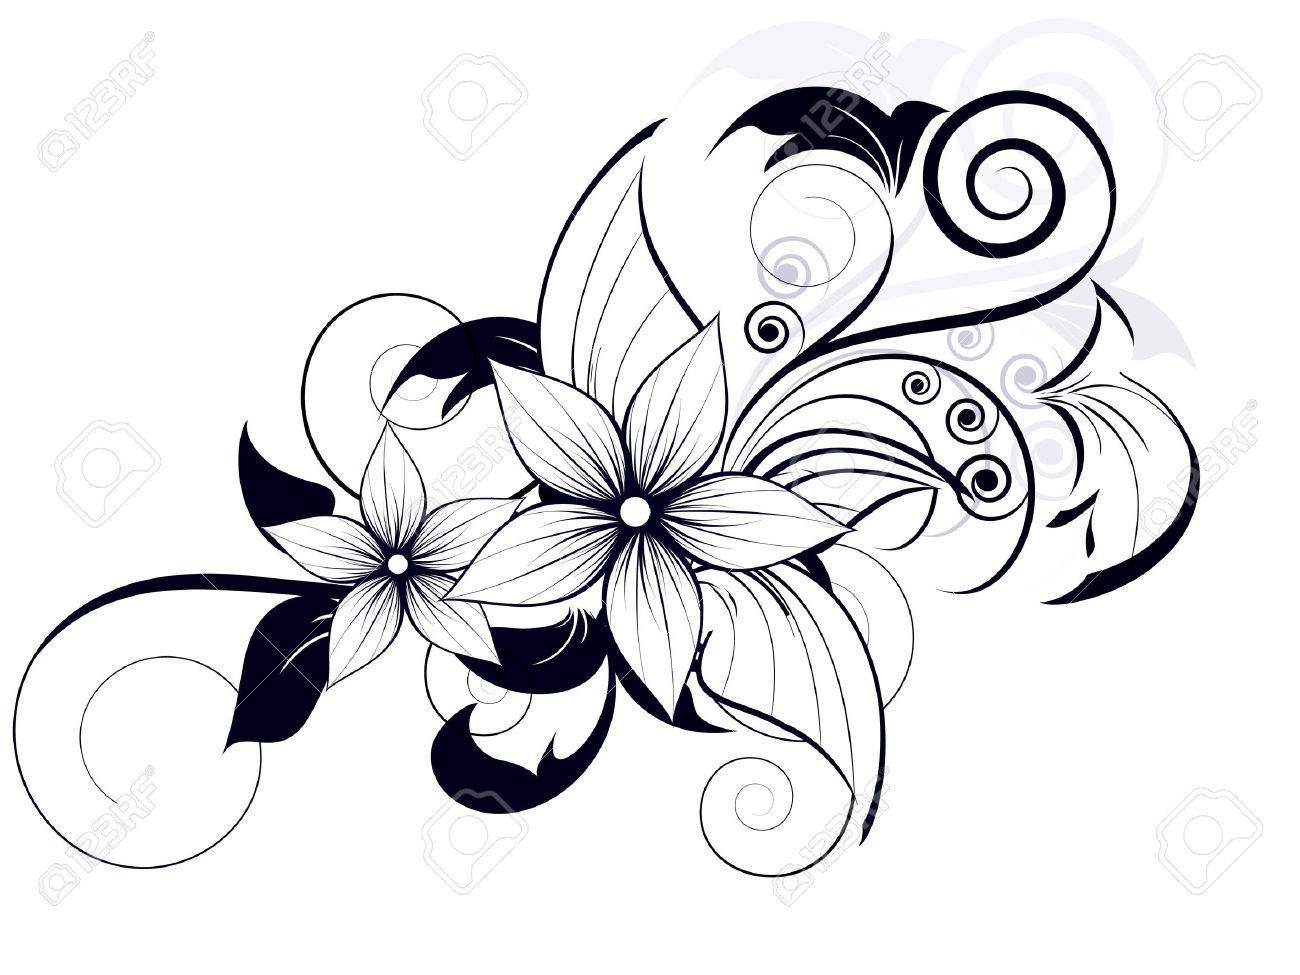 floral design element with swirls for spring Stock Vector - 23151981